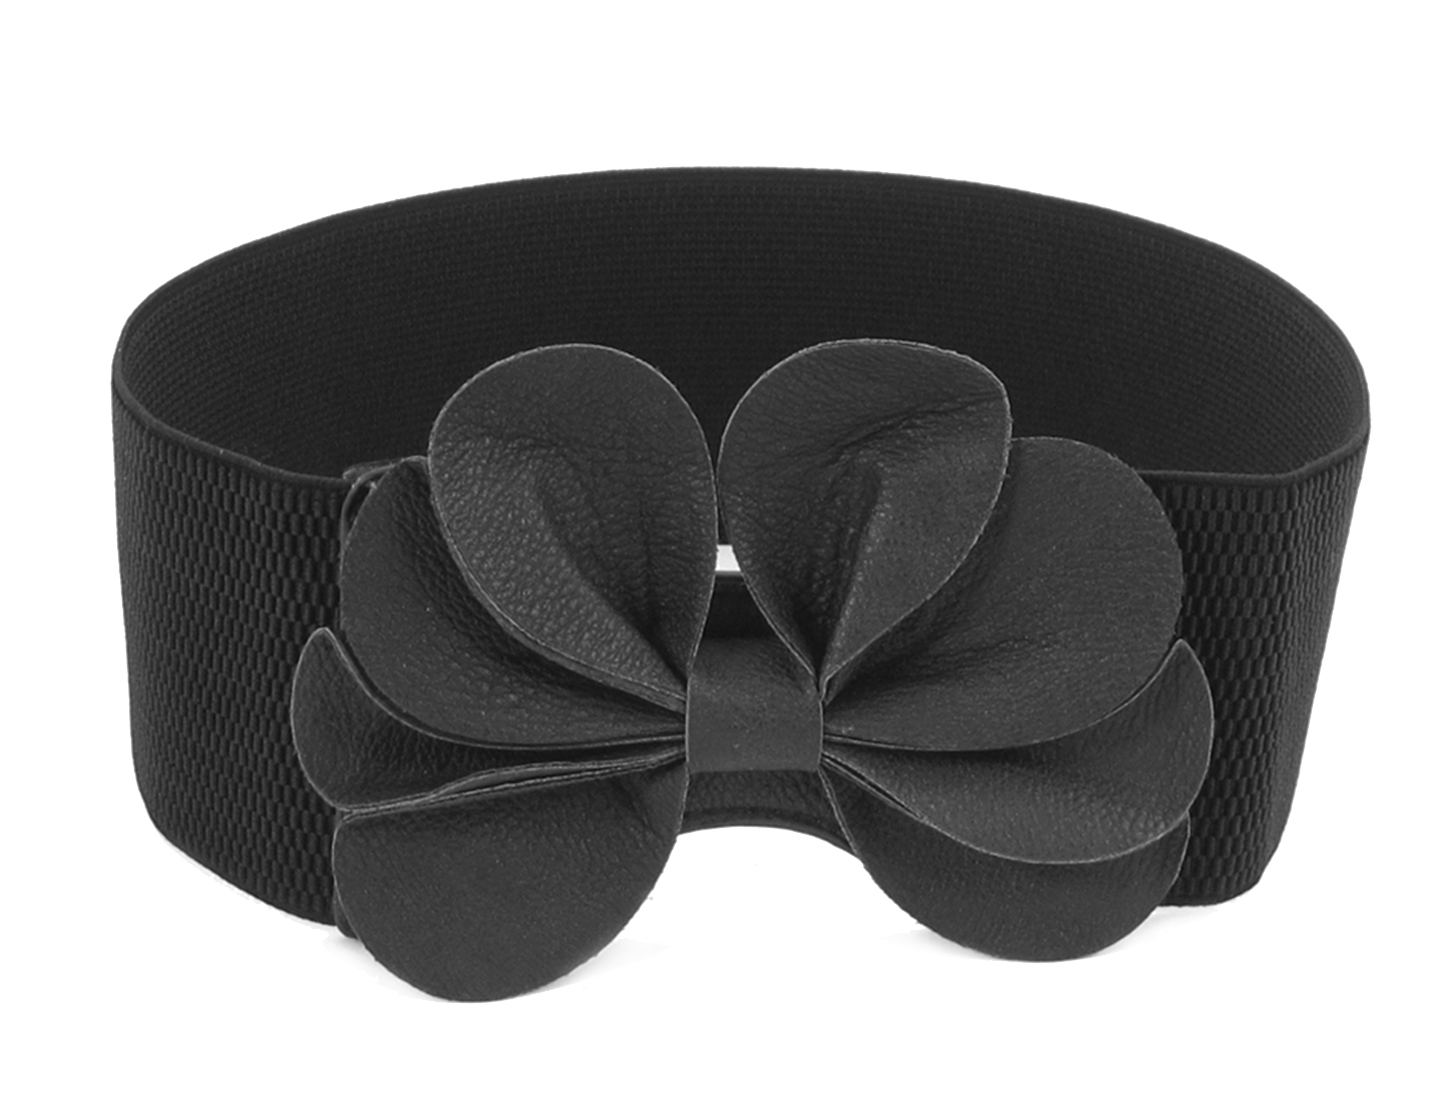 Lady Black Faux Leather Flower Bowknot Decor Buckle Elastic Waist Belt